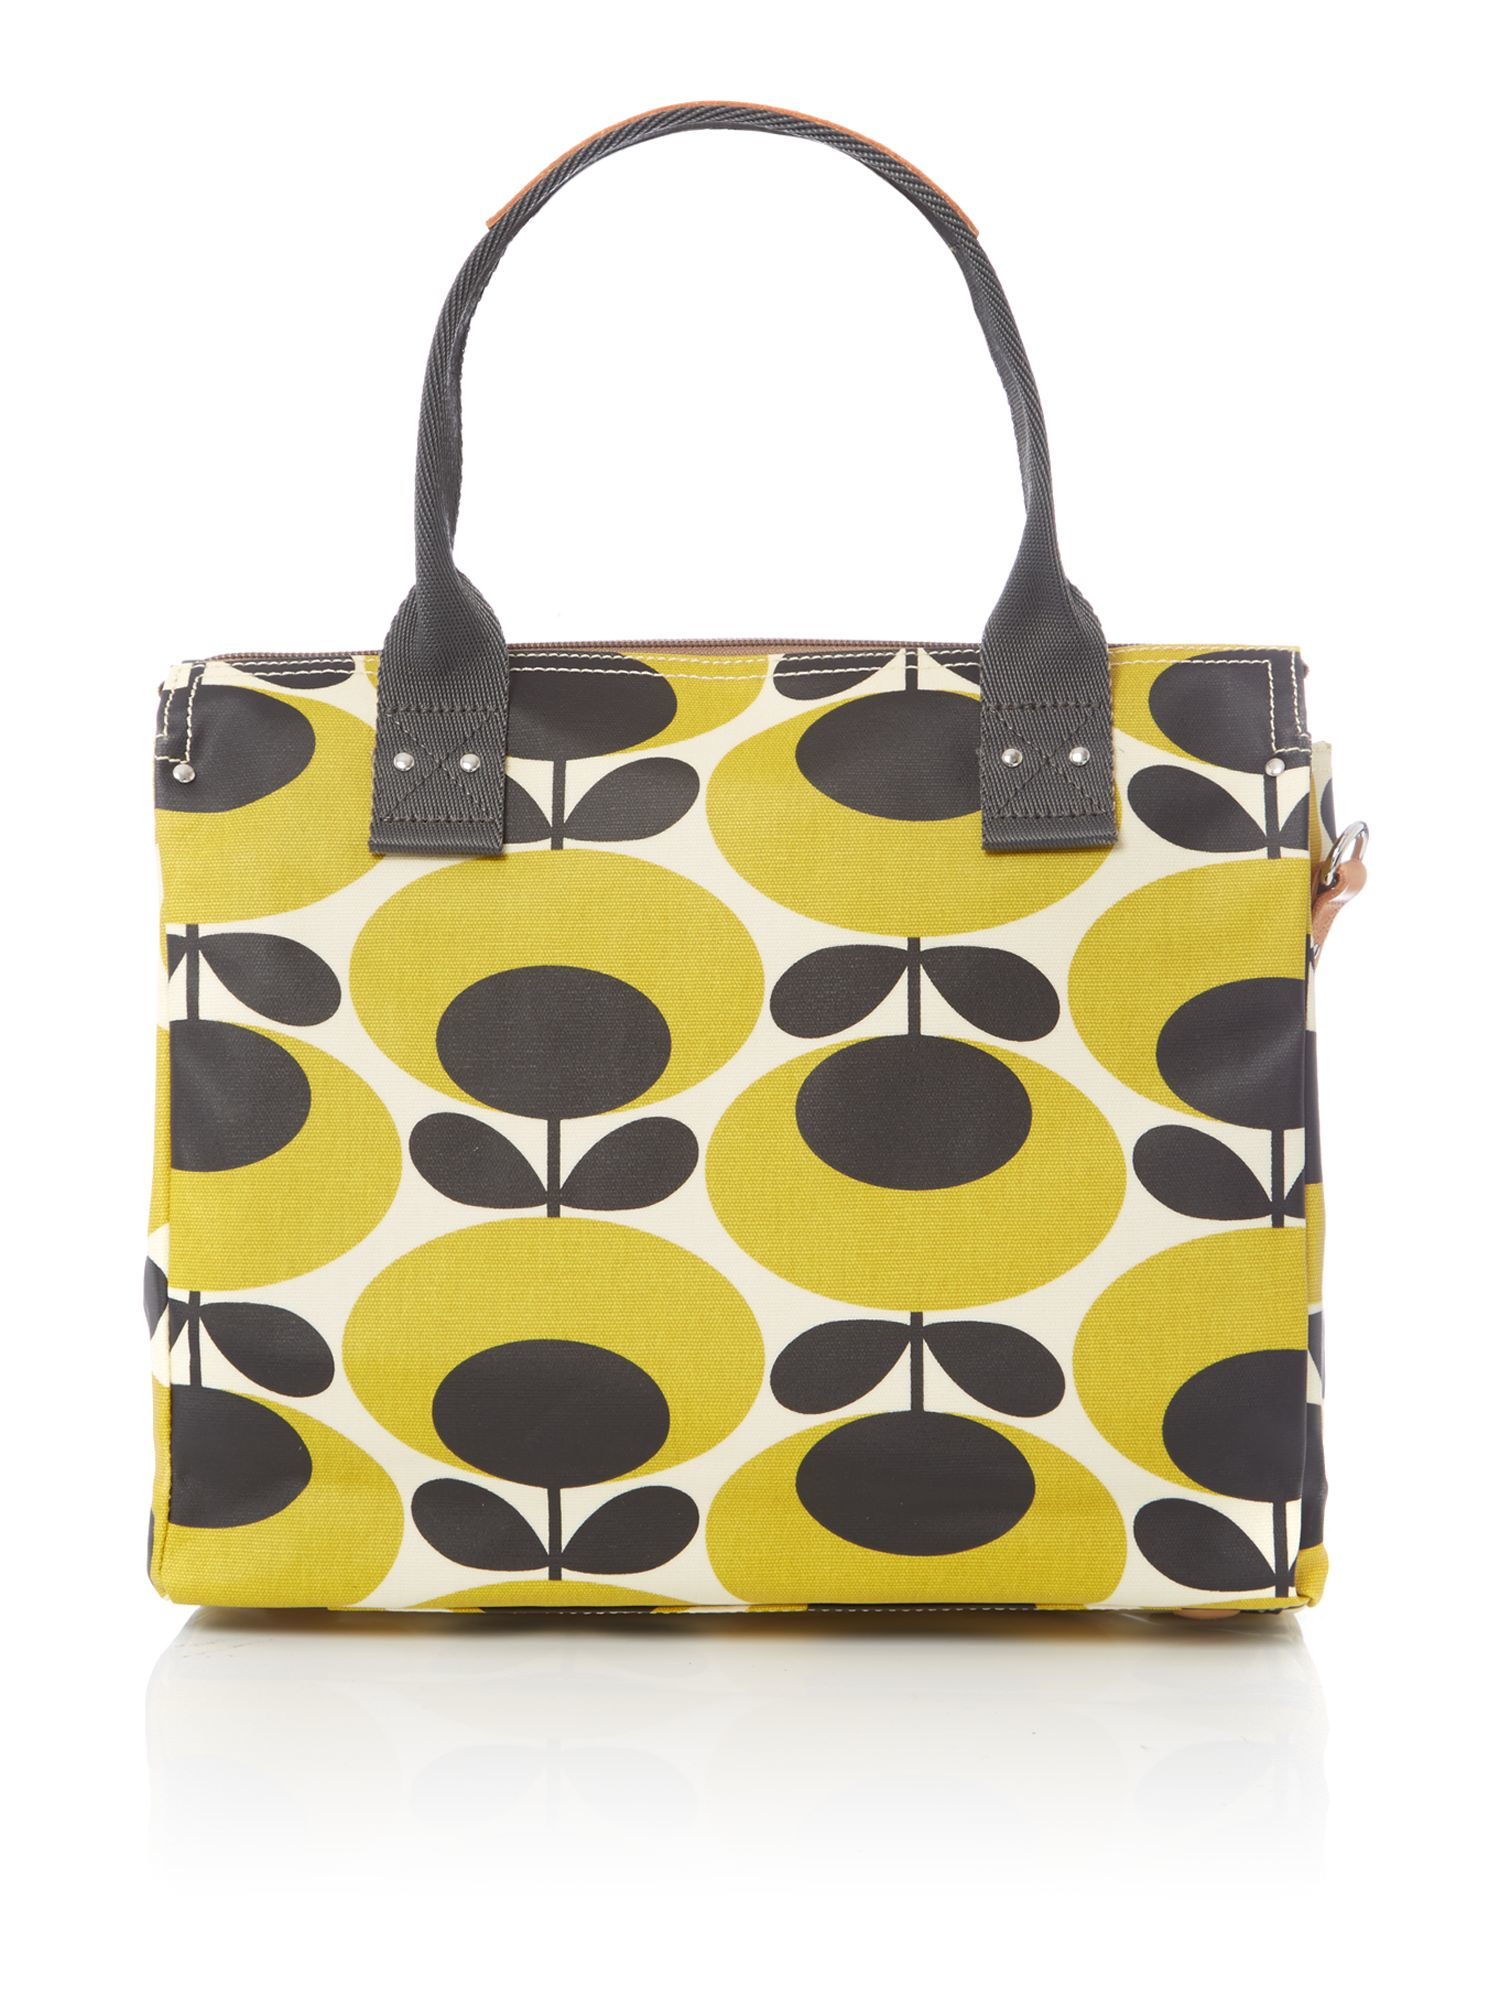 orla kiely giant oval yellow zip messenger bag in yellow. Black Bedroom Furniture Sets. Home Design Ideas